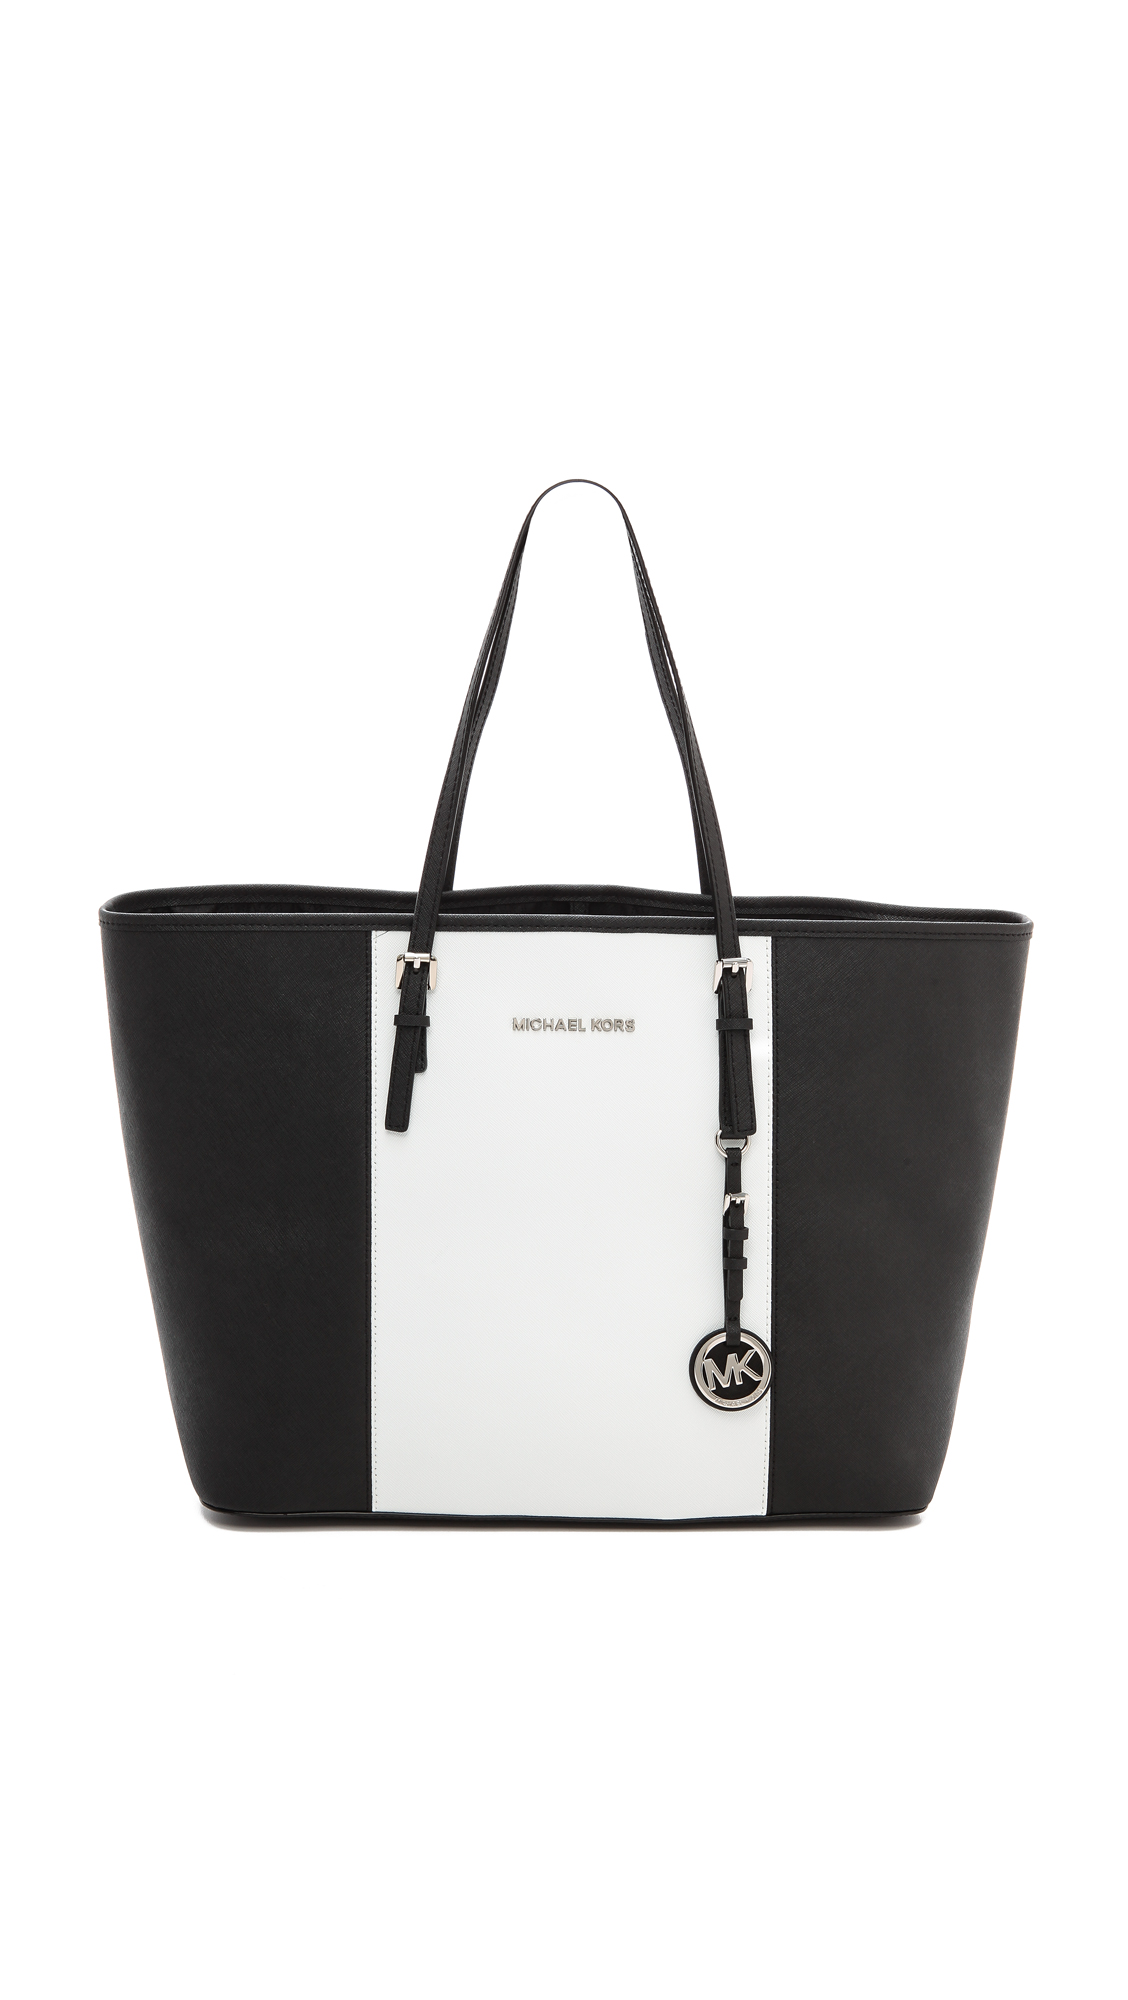 Michael Michael Kors Jet Set Travel Saffiano Leather Top-Zip Tote Navy Sale Online $ $ MICHAEL Michael Kors Jet Set Travel Saffiano Leather Top-Zip Tote White-Black.